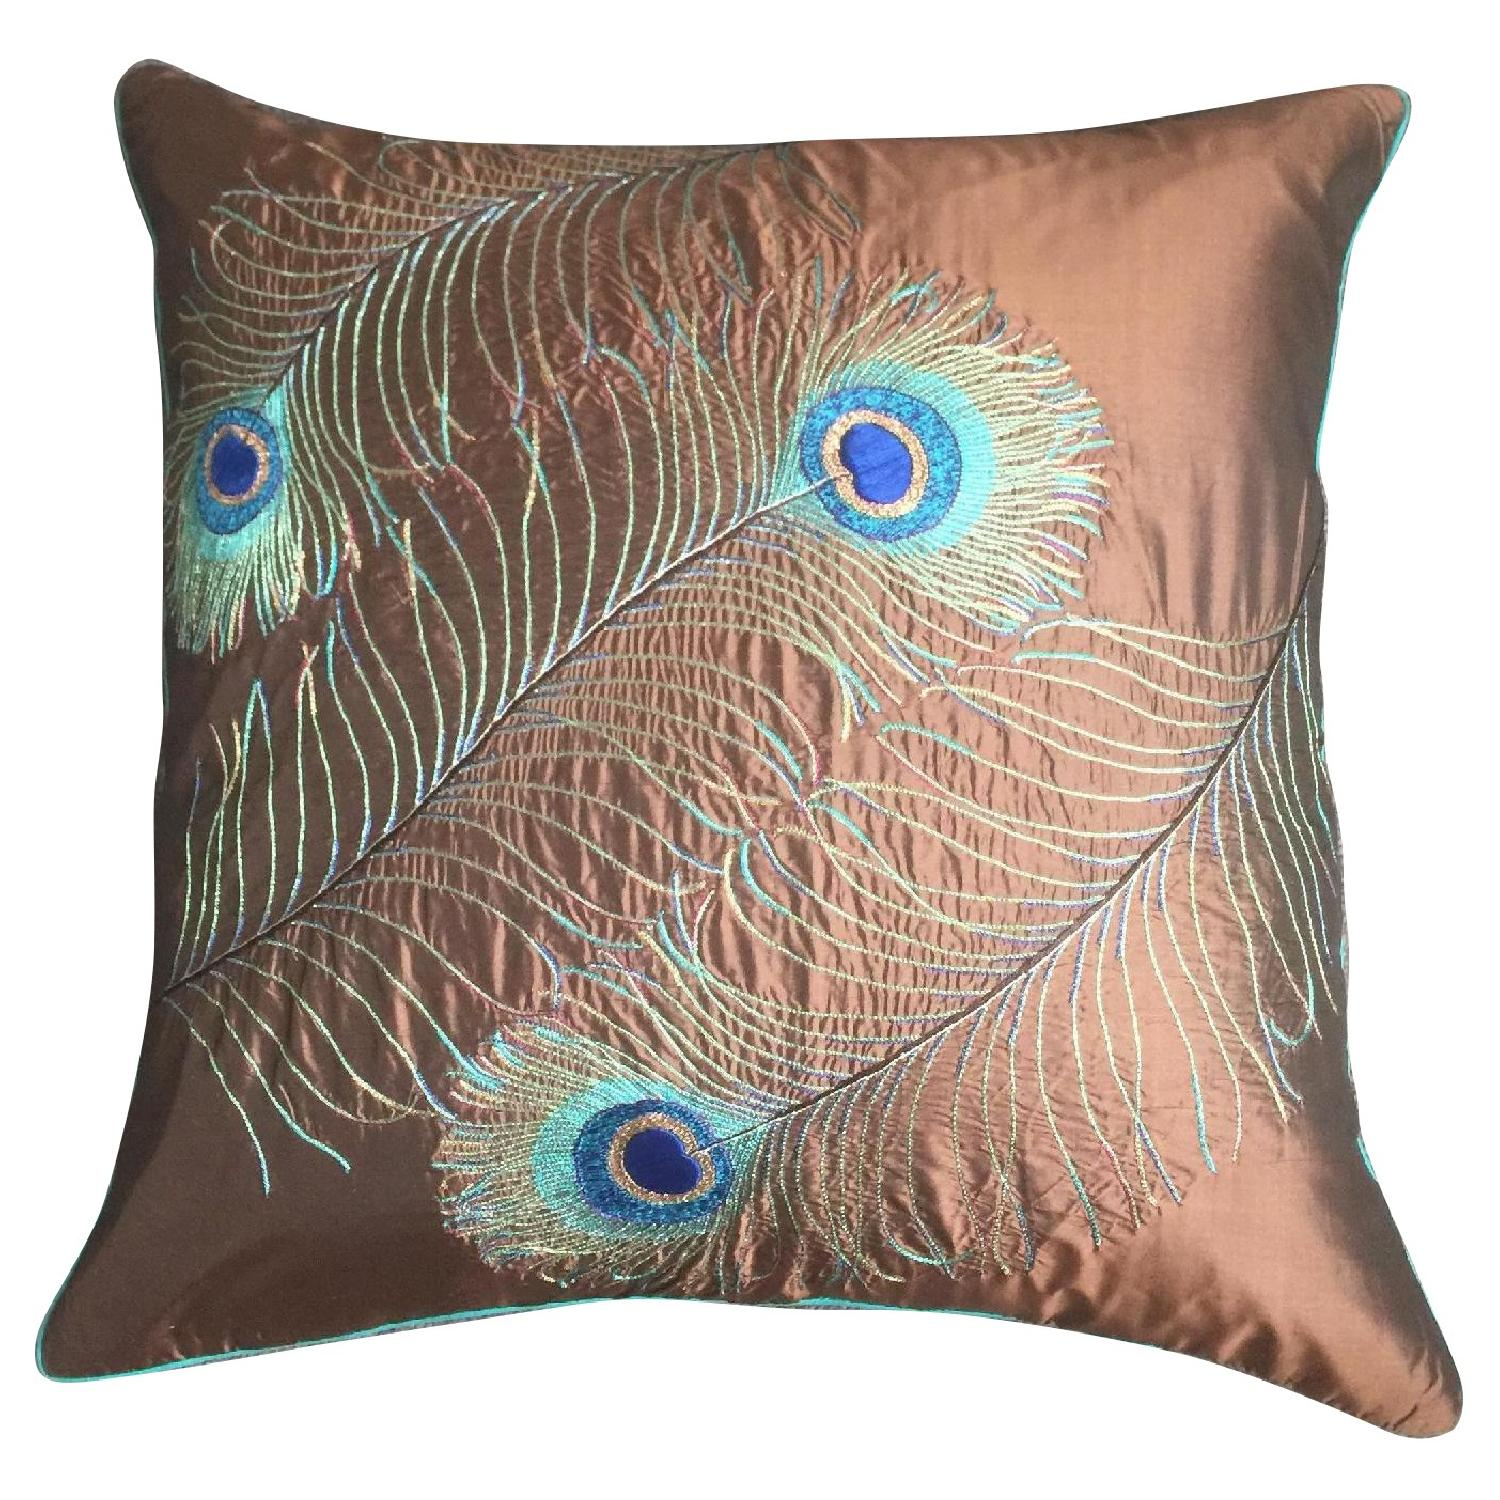 Peacock Feather Embroidered Pillow - image-0